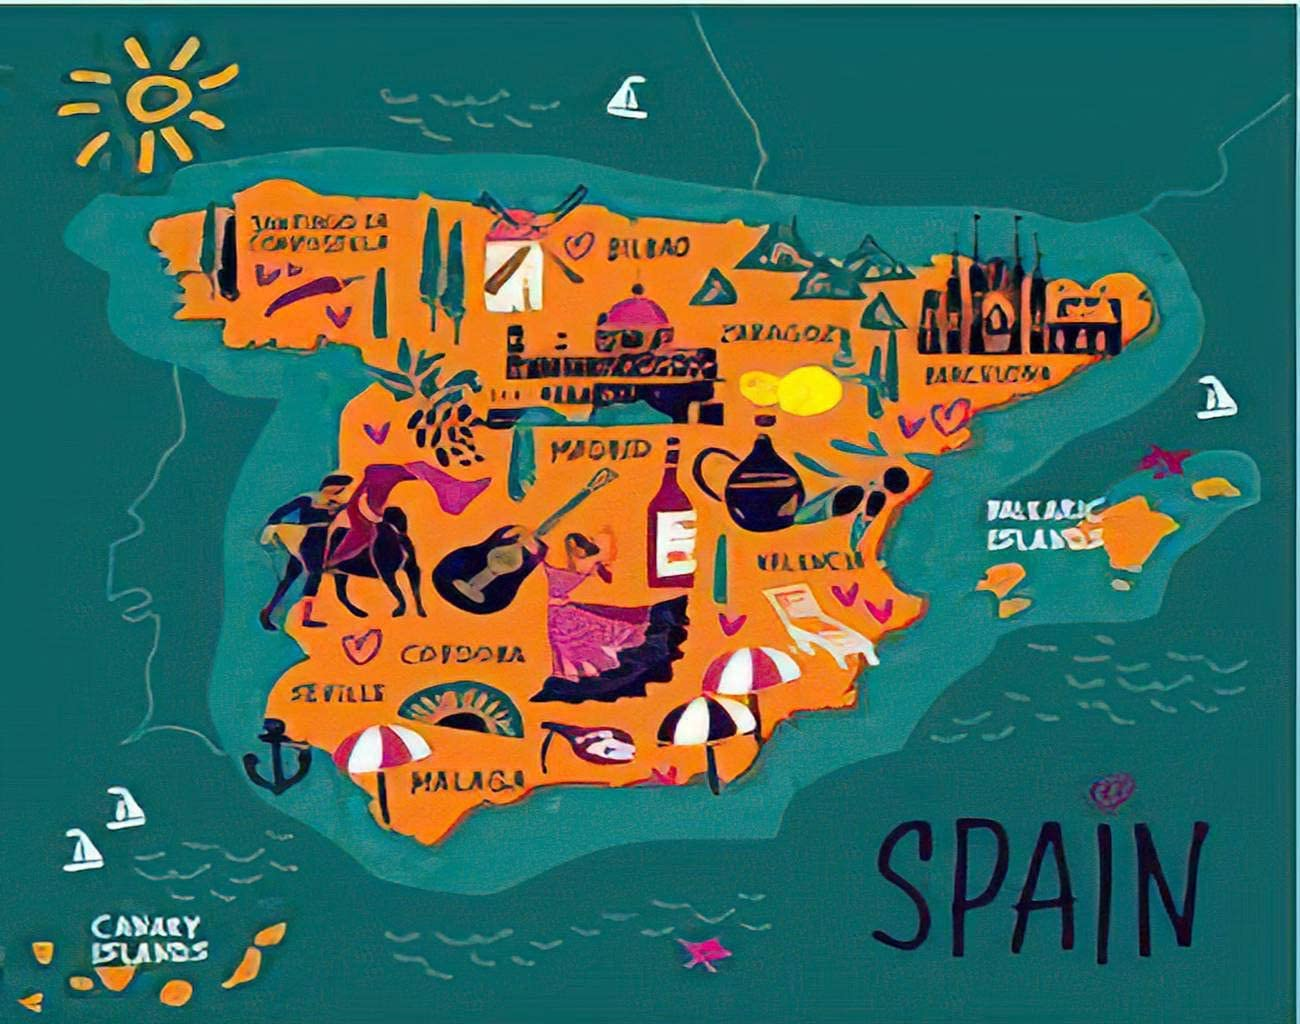 MQPPE Cartoon 5D DIY Diamond Painting Kits, Stylized Map of Spain Travel Spanish Landmarks People Food and Plants Full Drill Painting Arts Set Craft Canvas for Home Wall Decor Adults Kids, 12